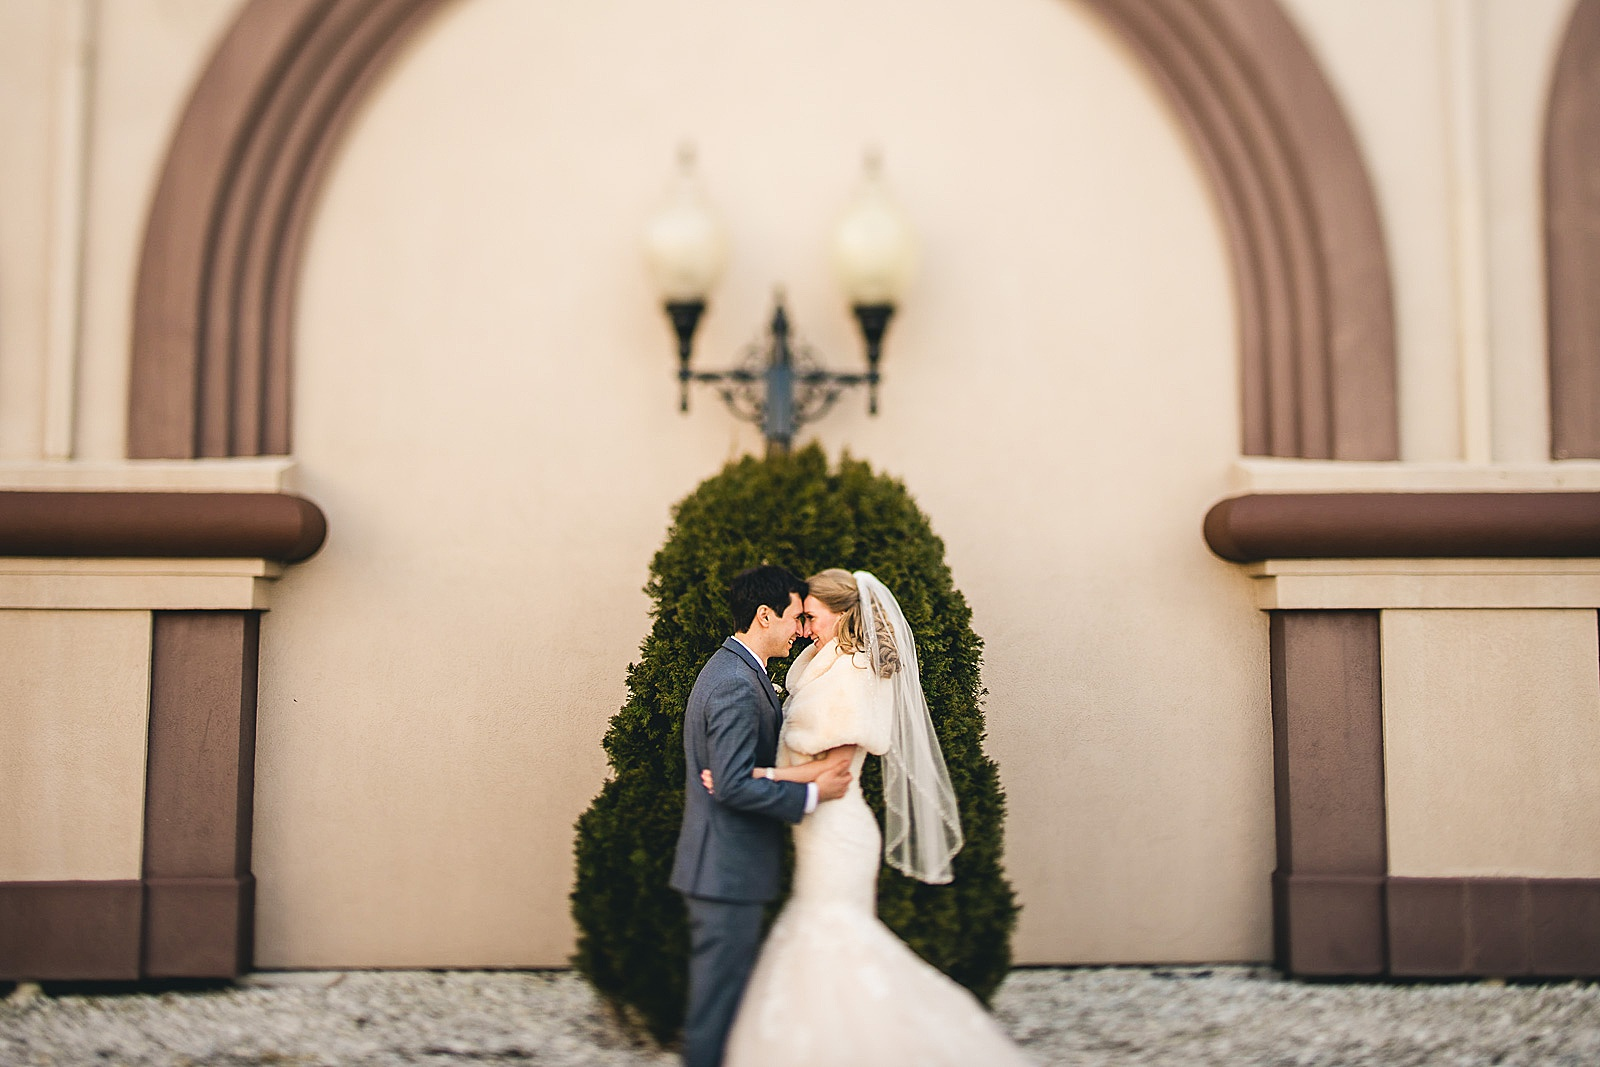 10 wedding portraits at drury lane - Oakbrook Wedding Photos at Drury Lane // Marina + Joe